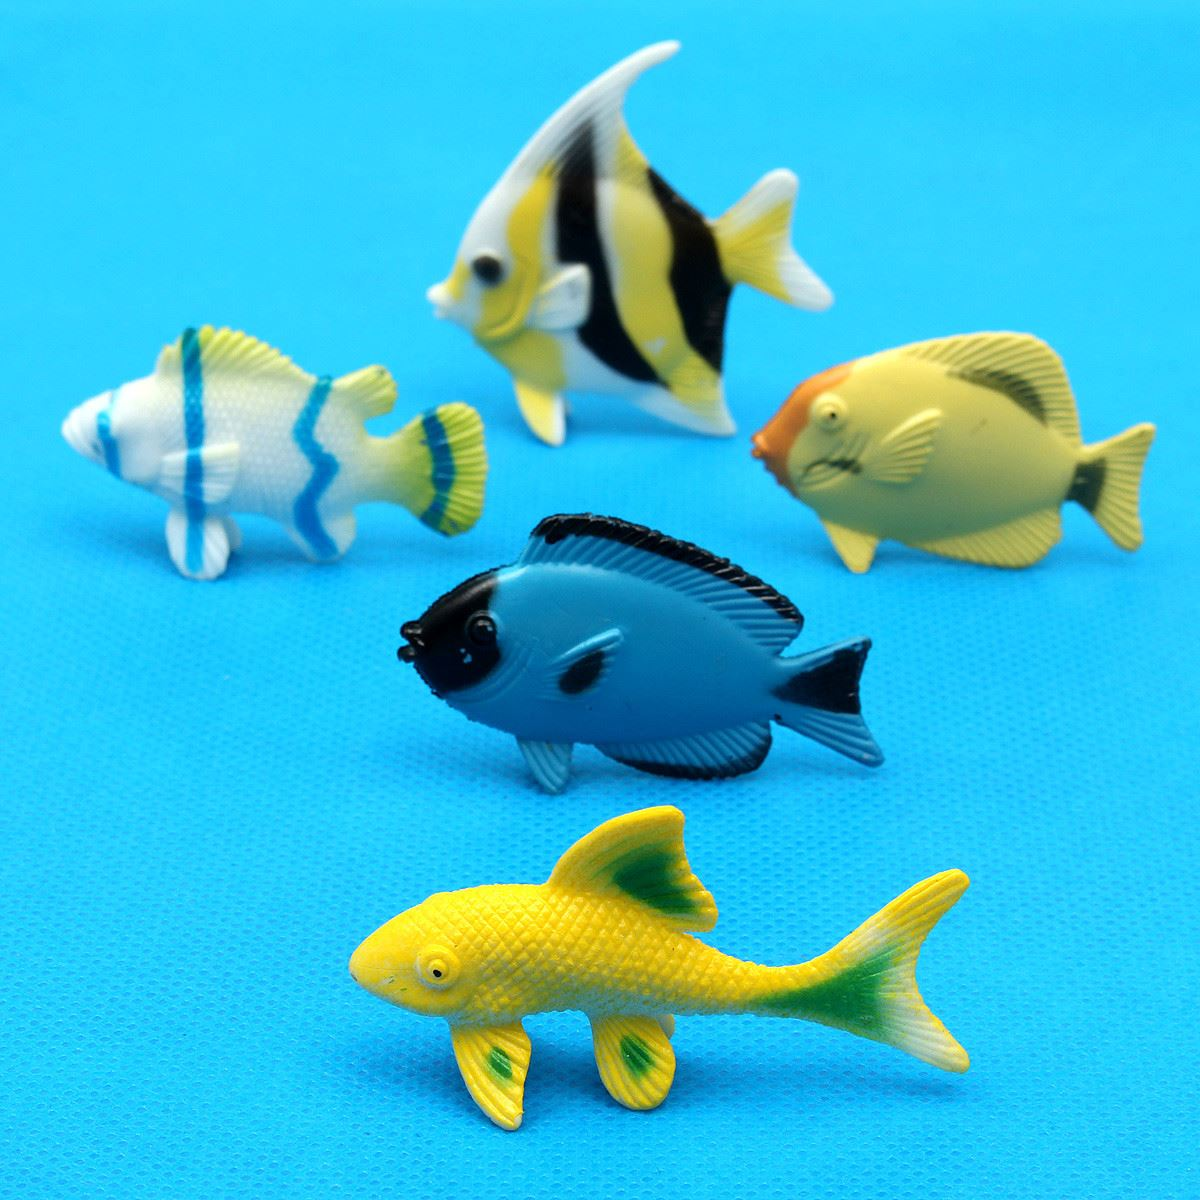 12 pcs Assorted Ocean Pet Figures Party Toy Gift Small Size Sea Life Model Toys PVC Pool Fish Toy Early Education Marine Animals(China (Mainland))